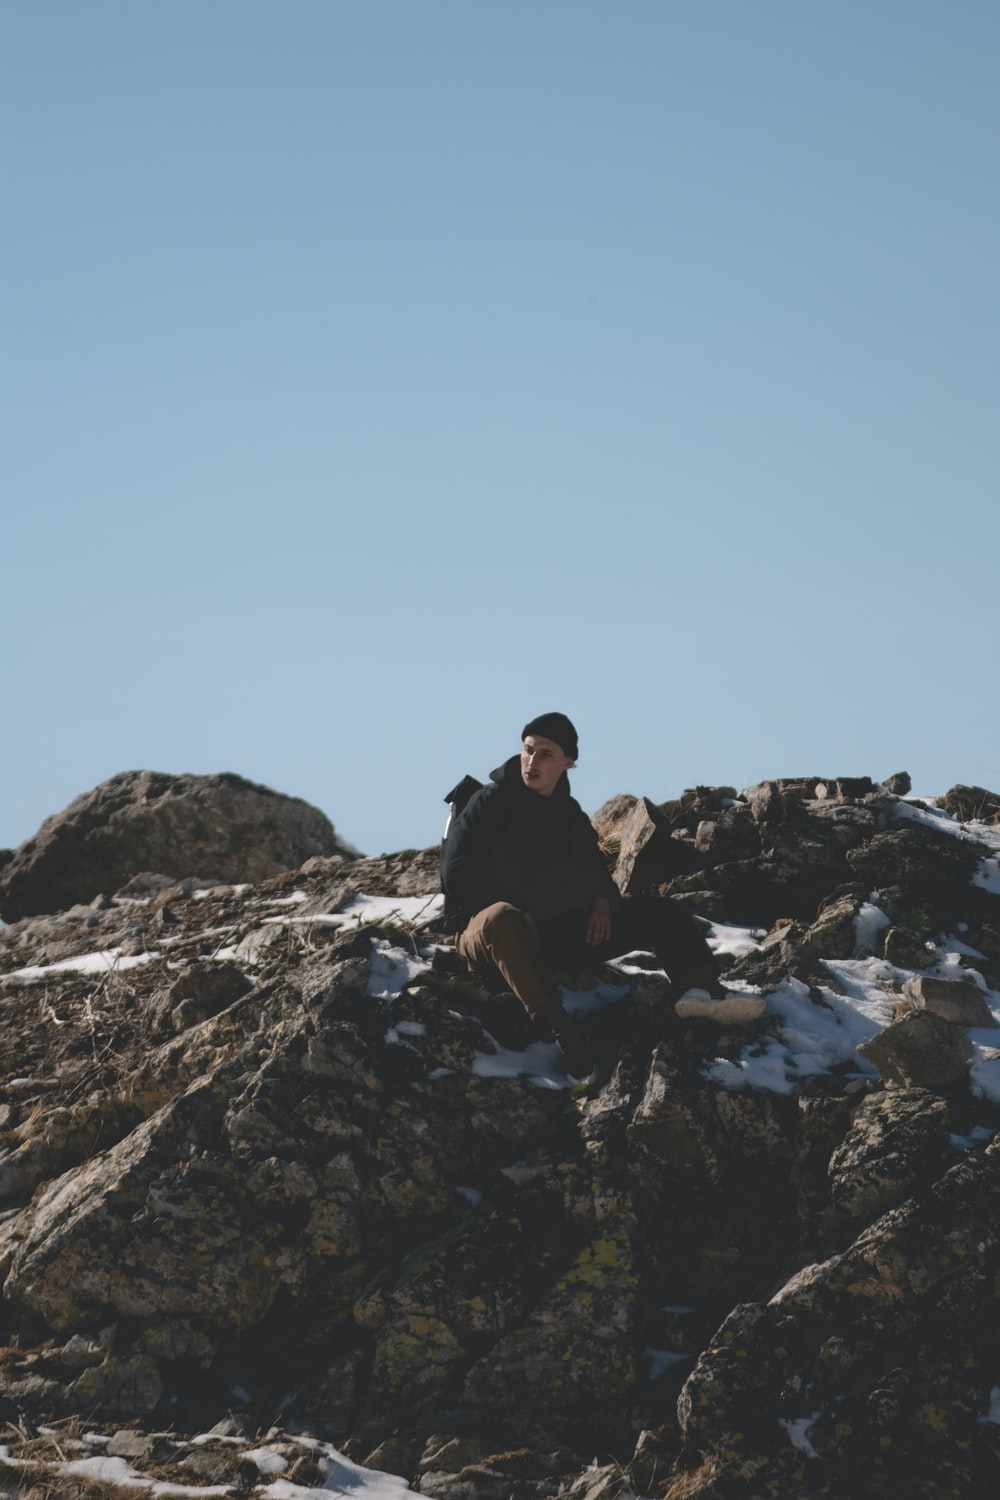 man and woman sitting on rocky mountain during daytime